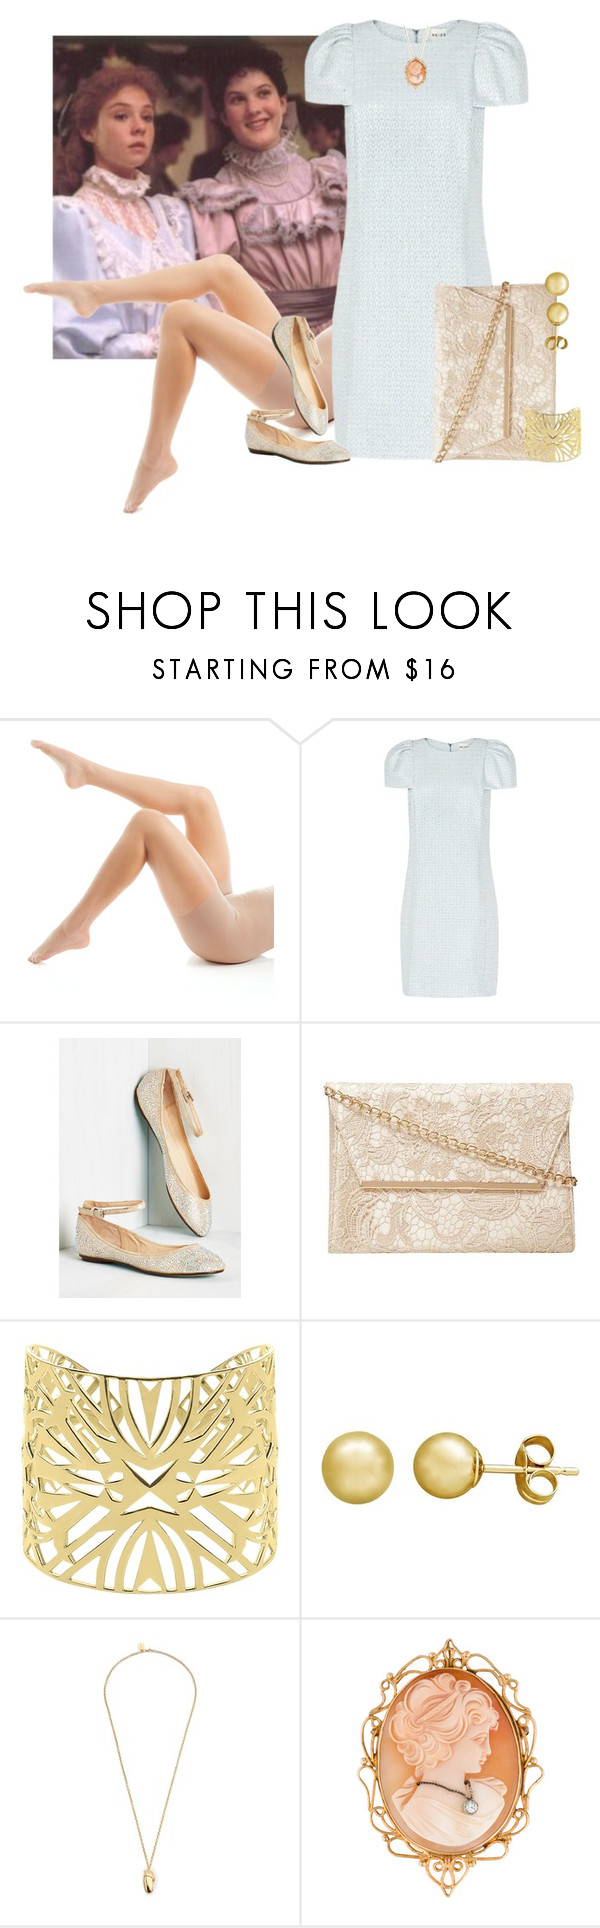 """""""Puffed Sleeves"""" by erin-wright-1 on Polyvore featuring Berkshire, Reiss, Betsey Johnson, Dorothy Perkins, Vélizance, Everlasting Gold and Pembe Club"""